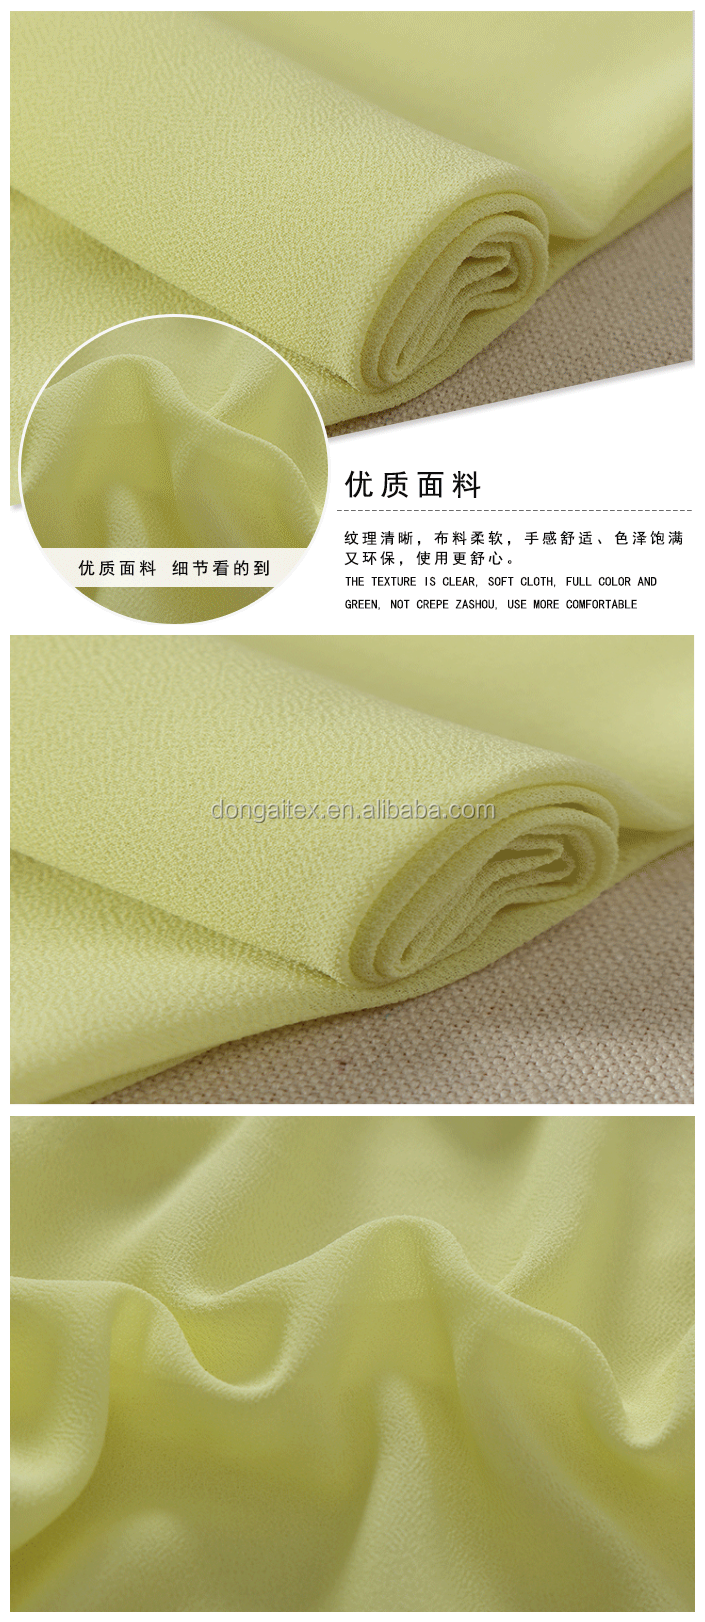 75d polyester pure color pearl Summer dress fabric chiffon fabric